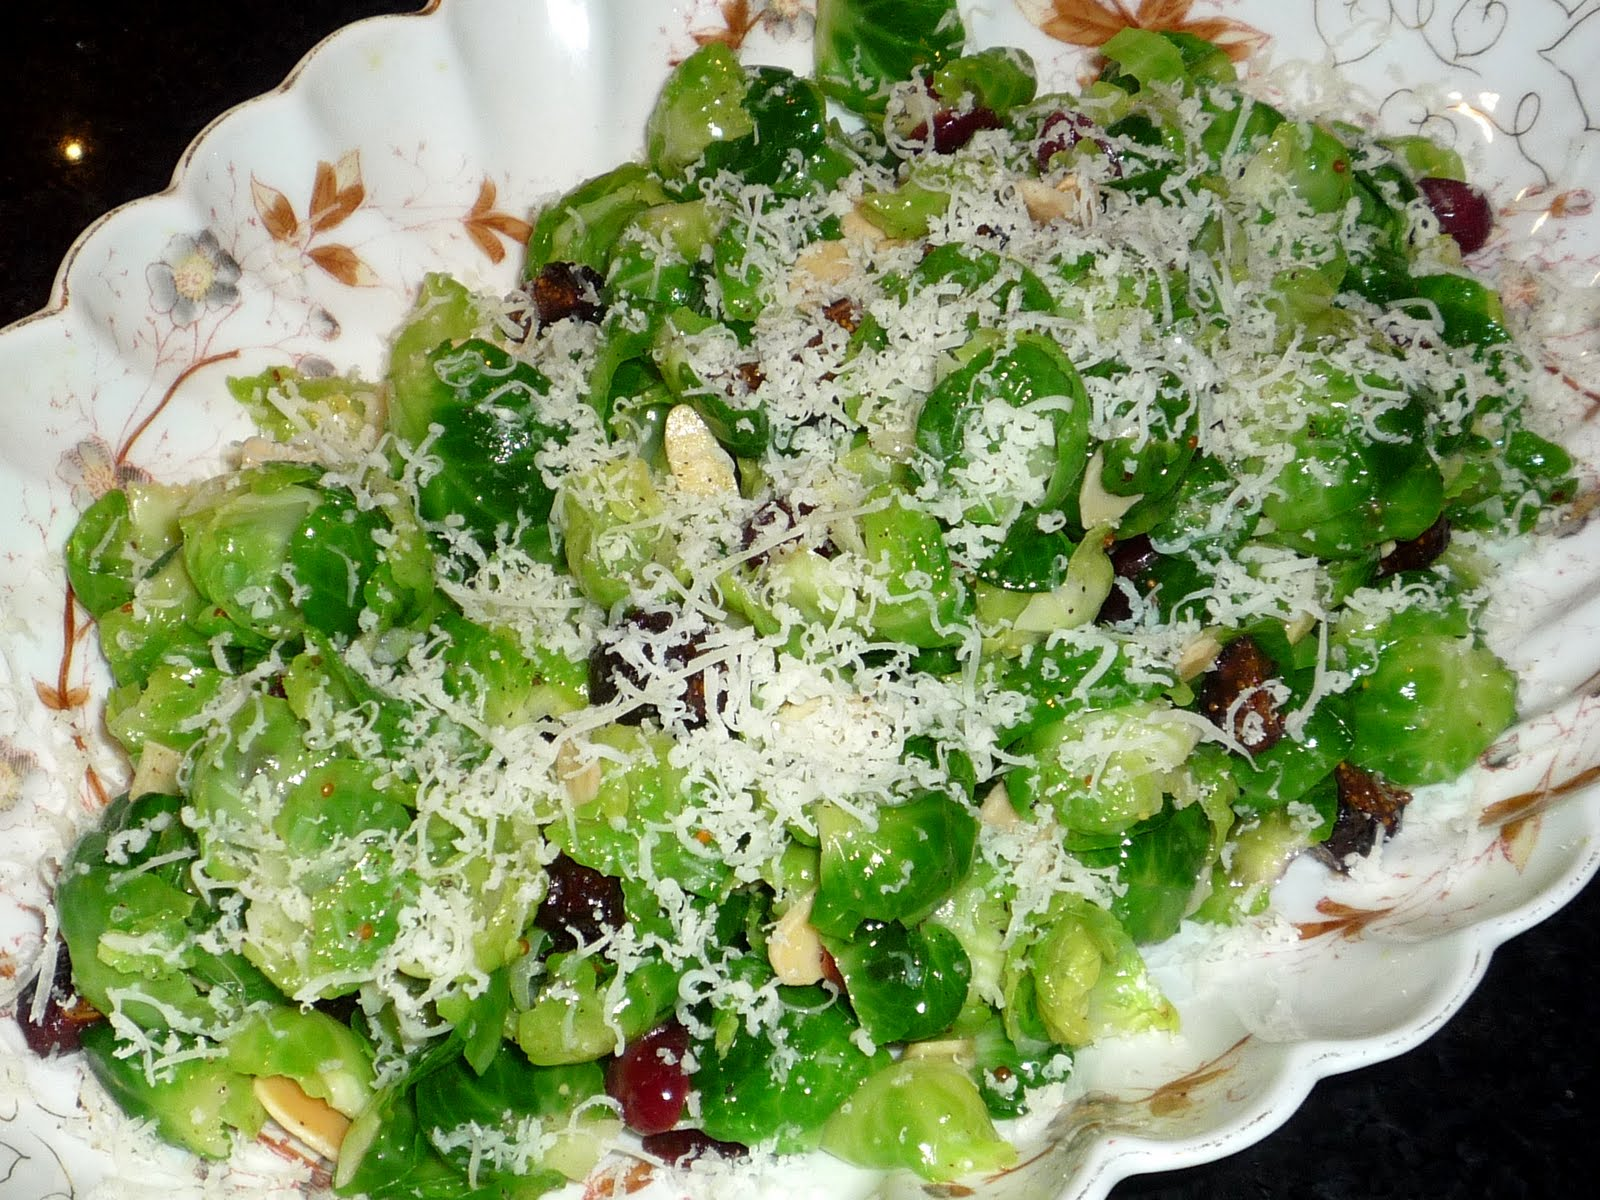 Dishing It Out: Brussels Sprout Salad with Mustard Vinaigrette